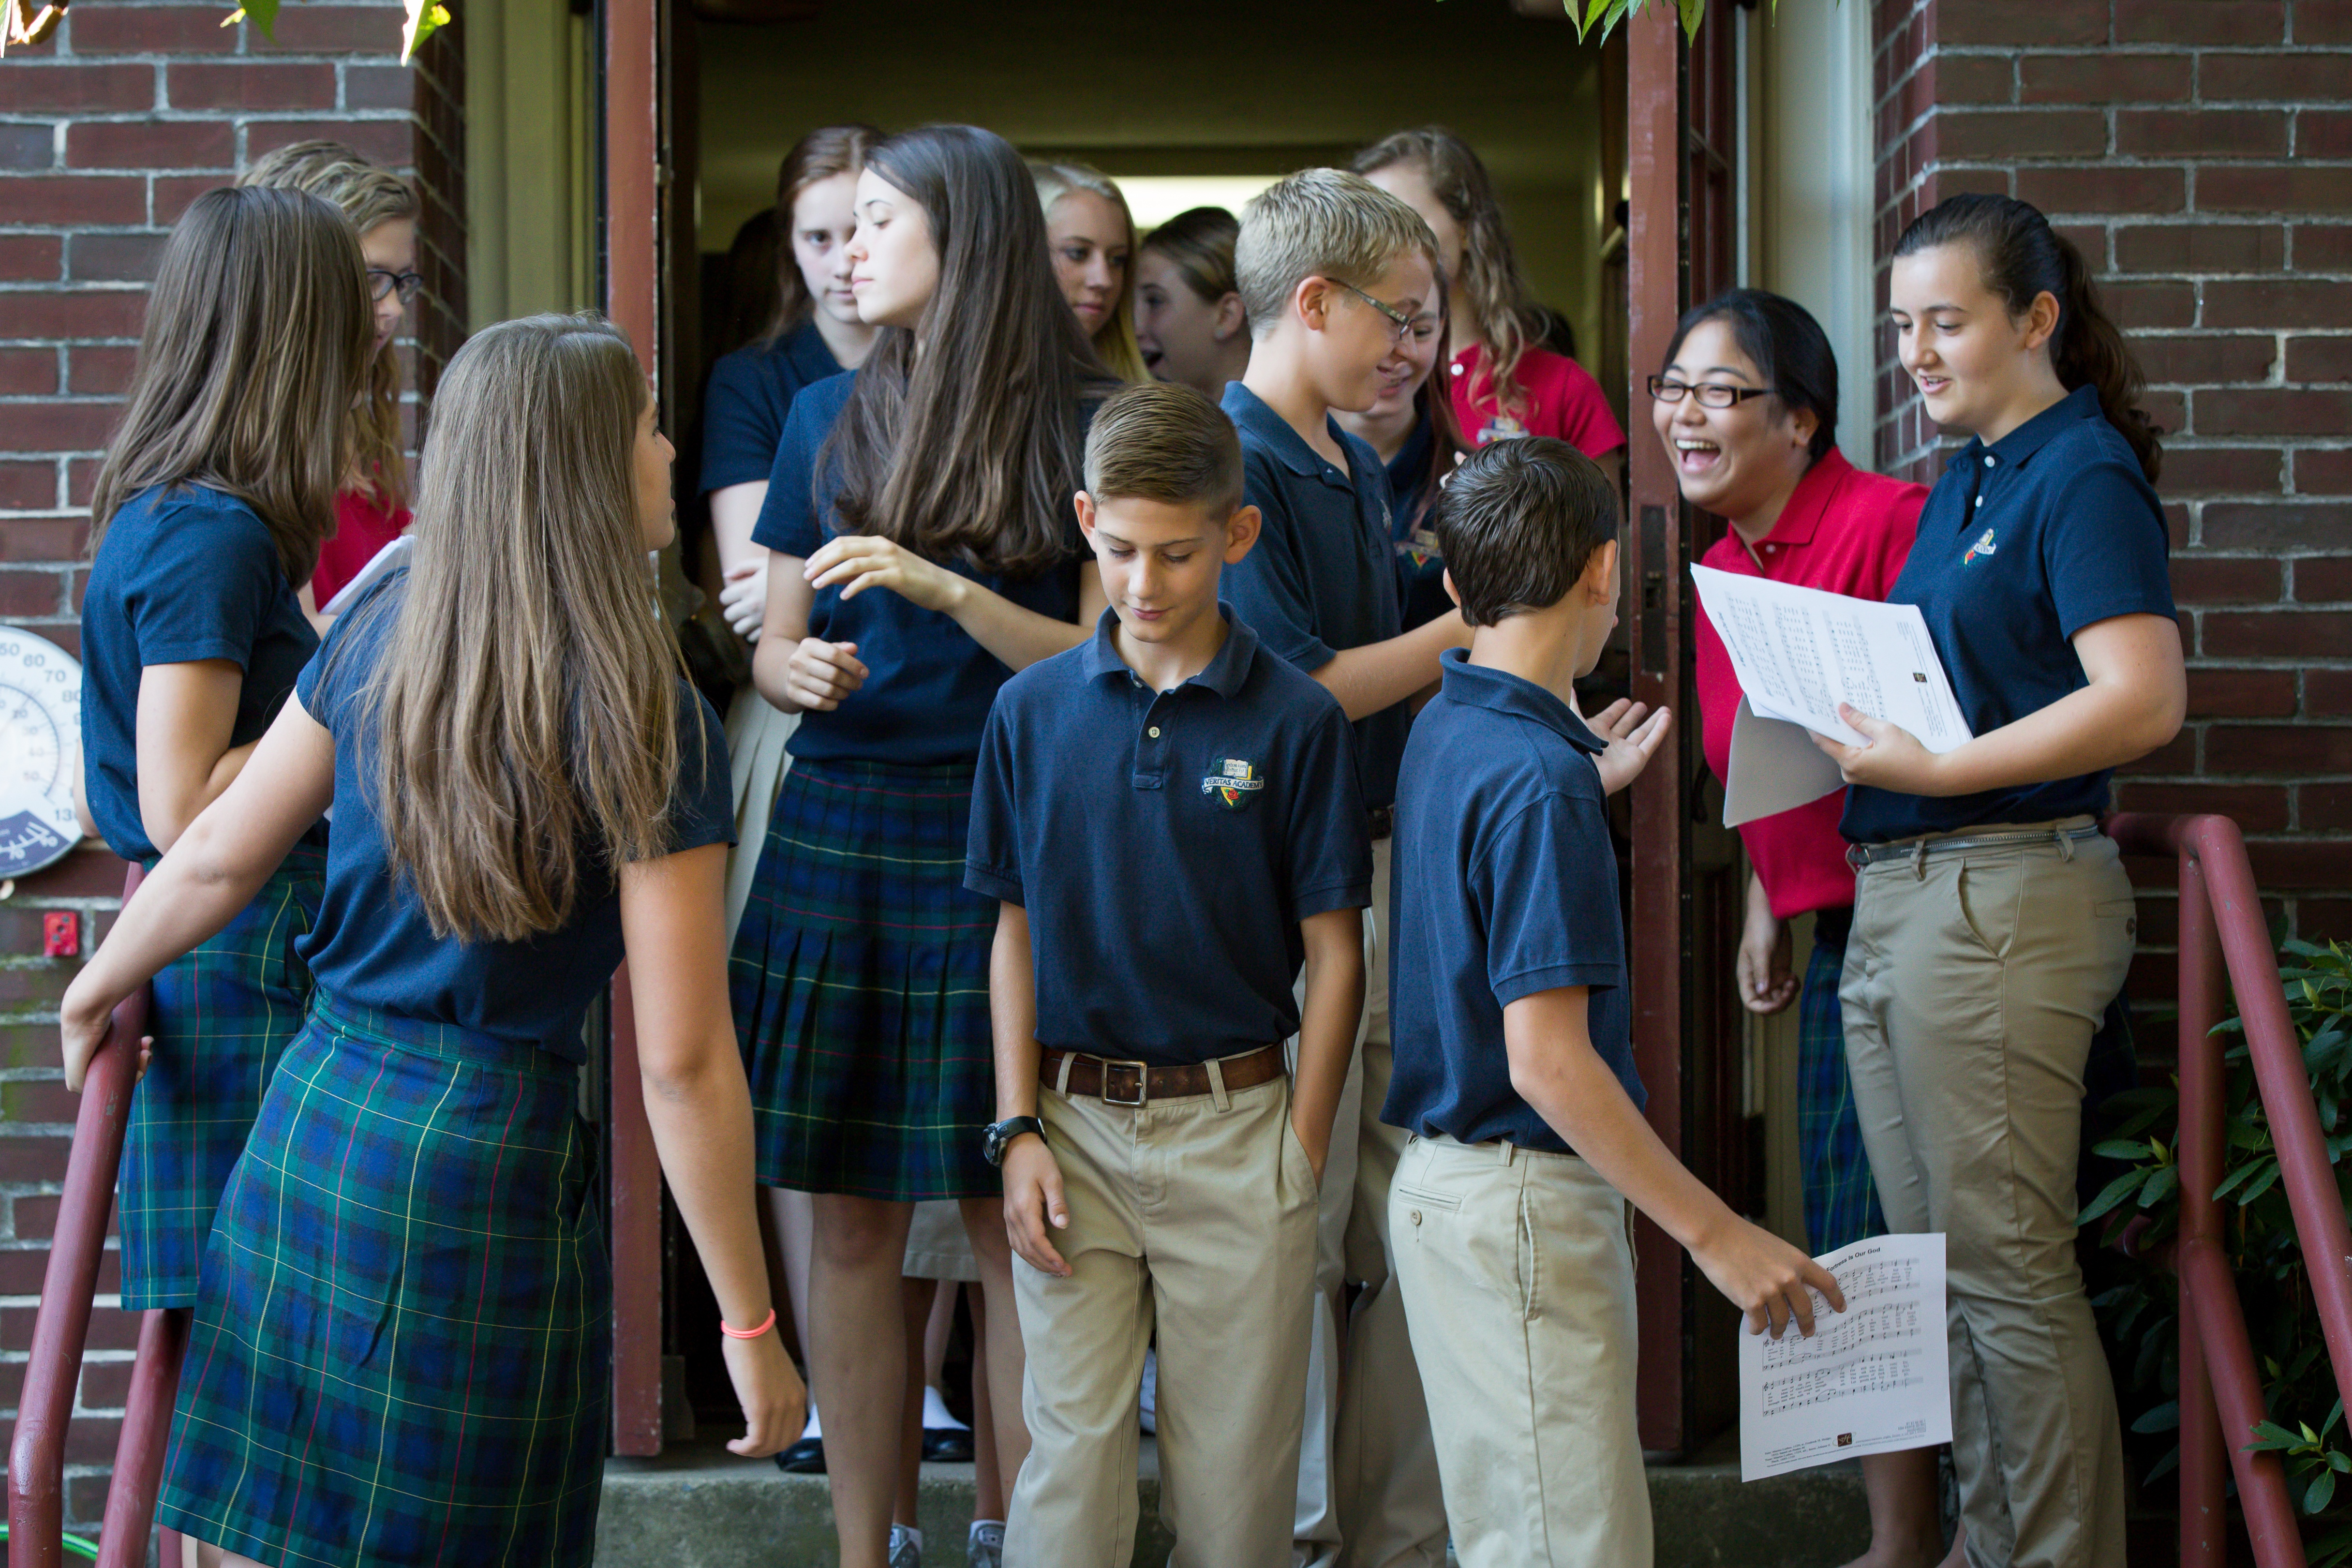 veritas students | Veritas Academy | Classical Christian School